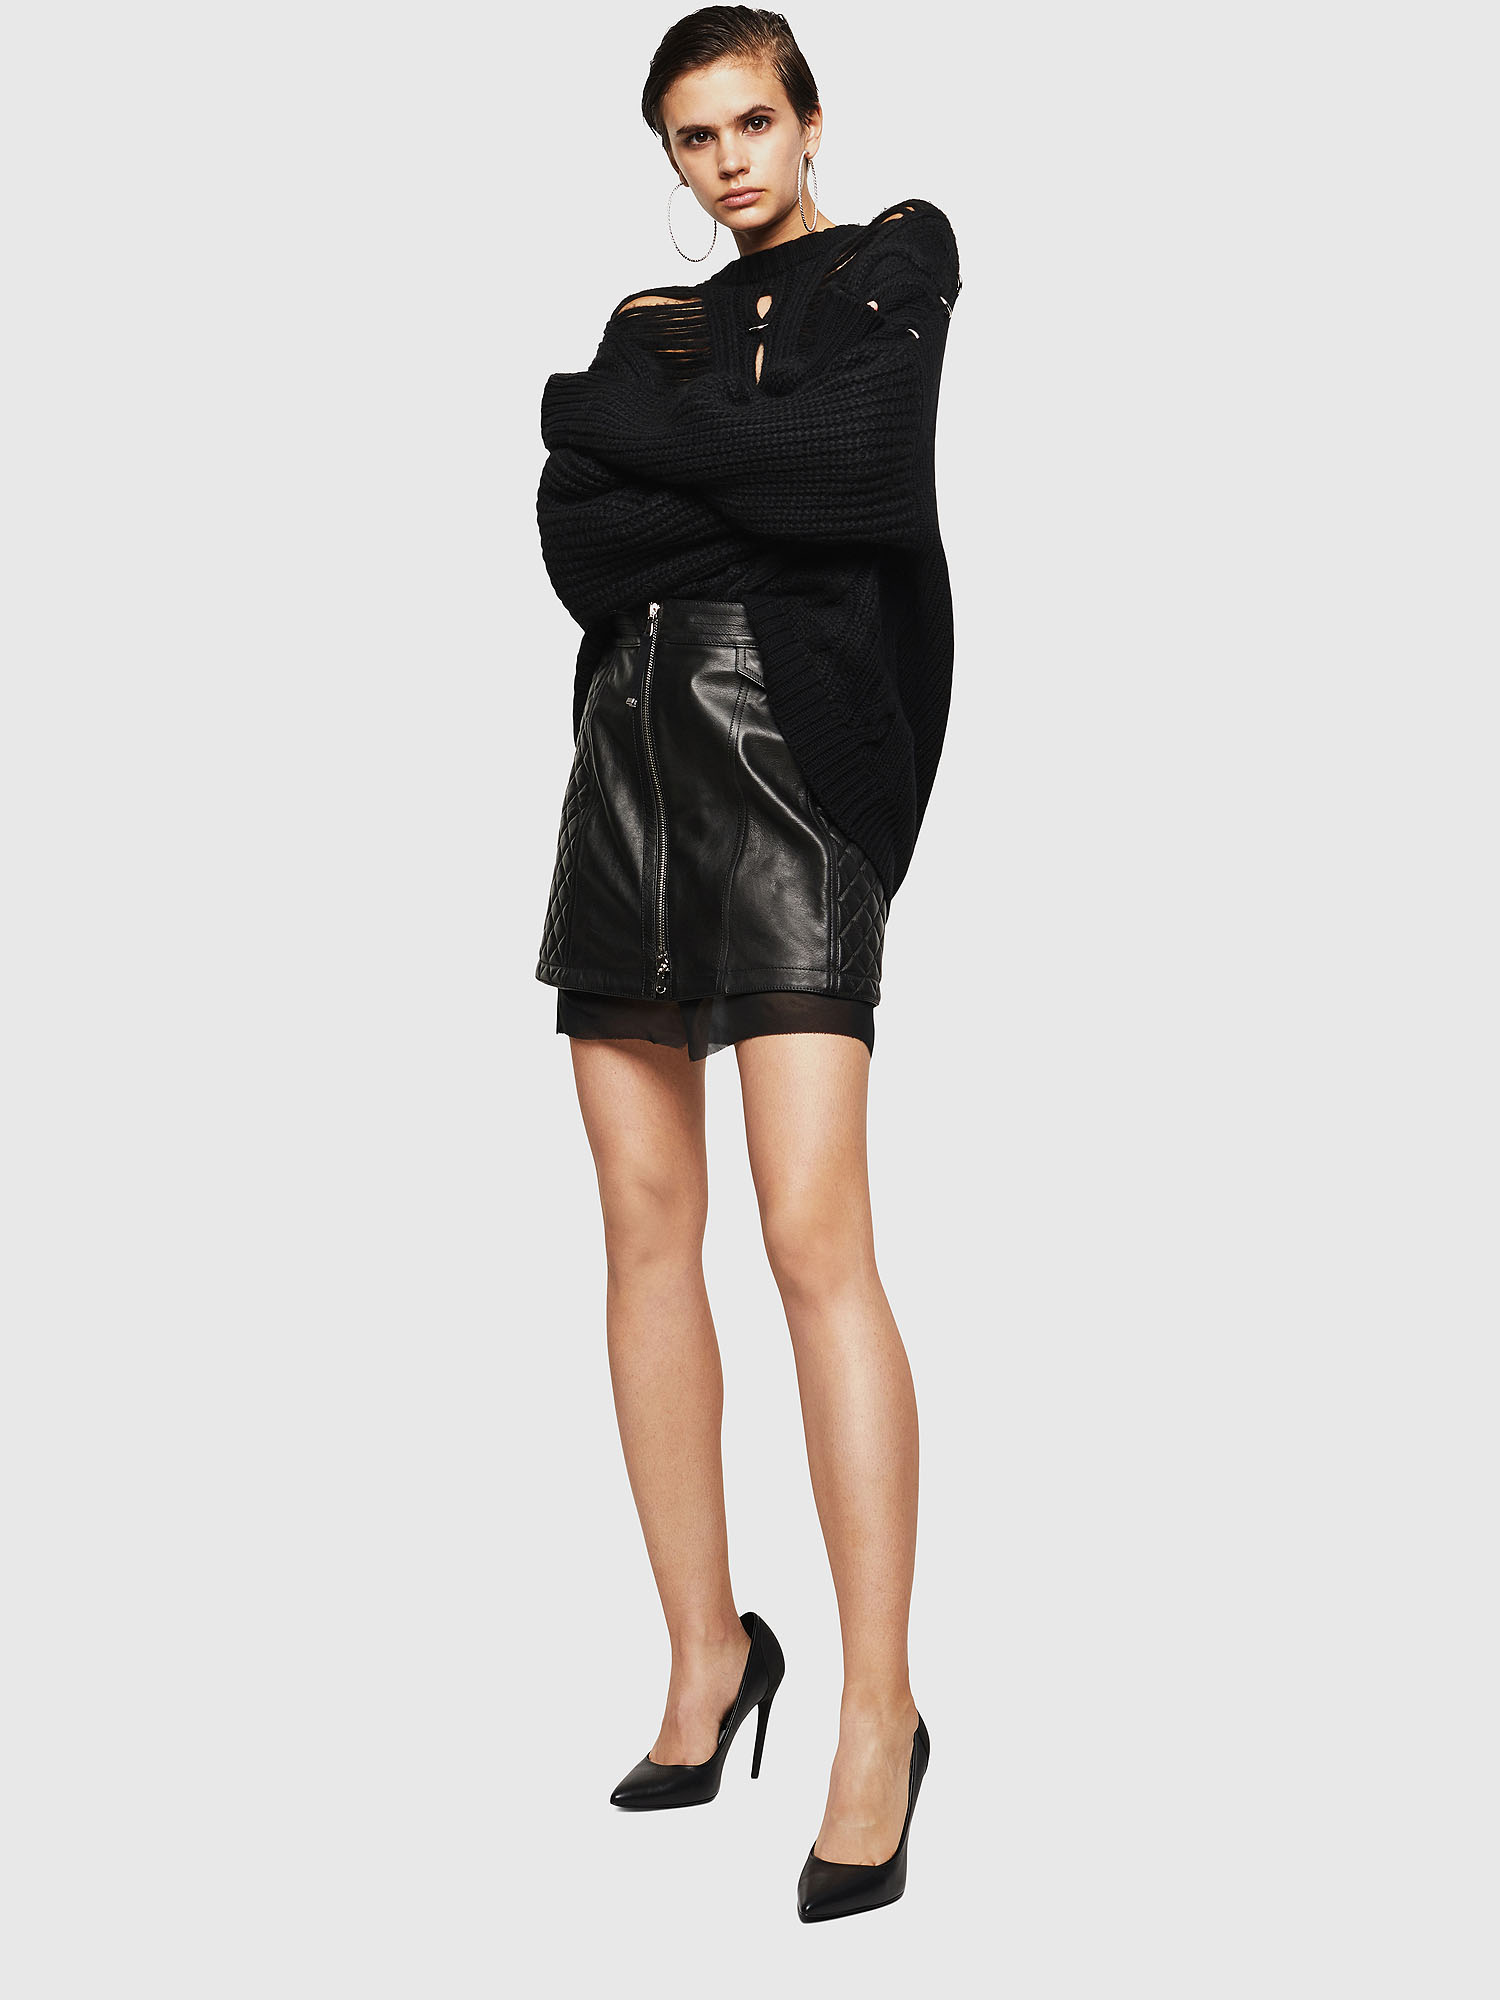 Diesel - OLESIA,  - Leather skirts - Image 6